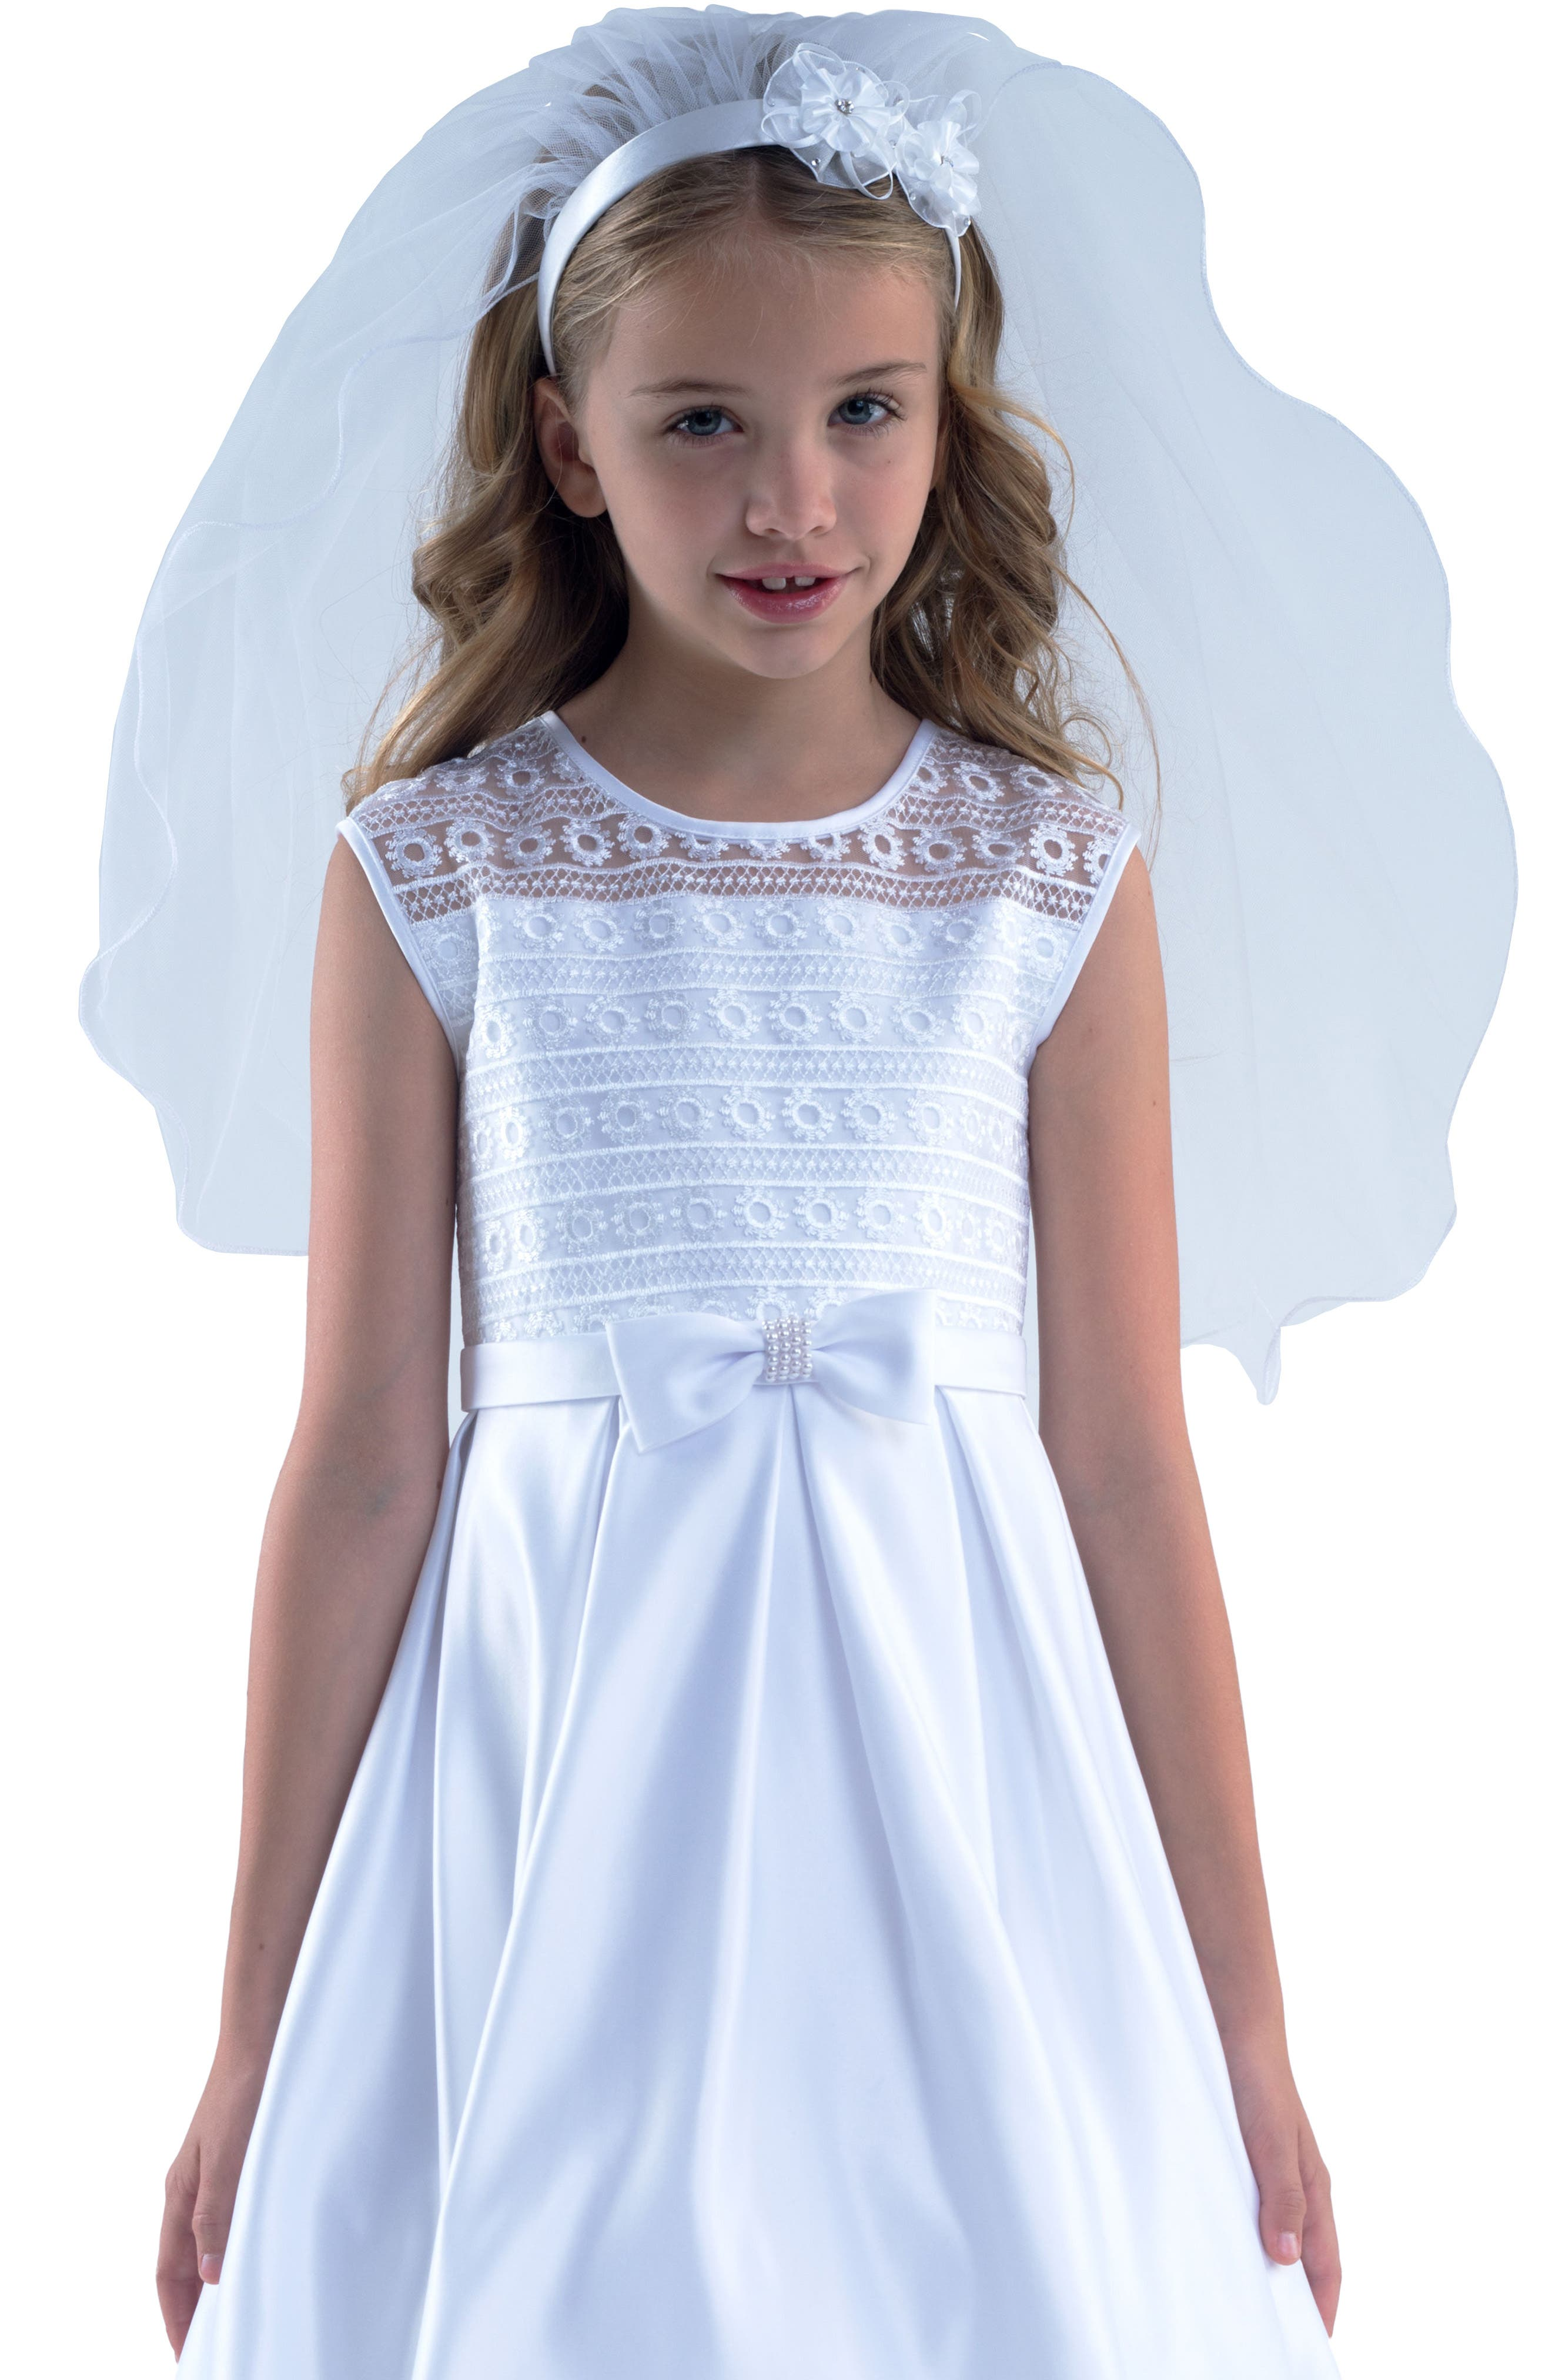 Us Angels Communion Headband With Veil Size One Size  White